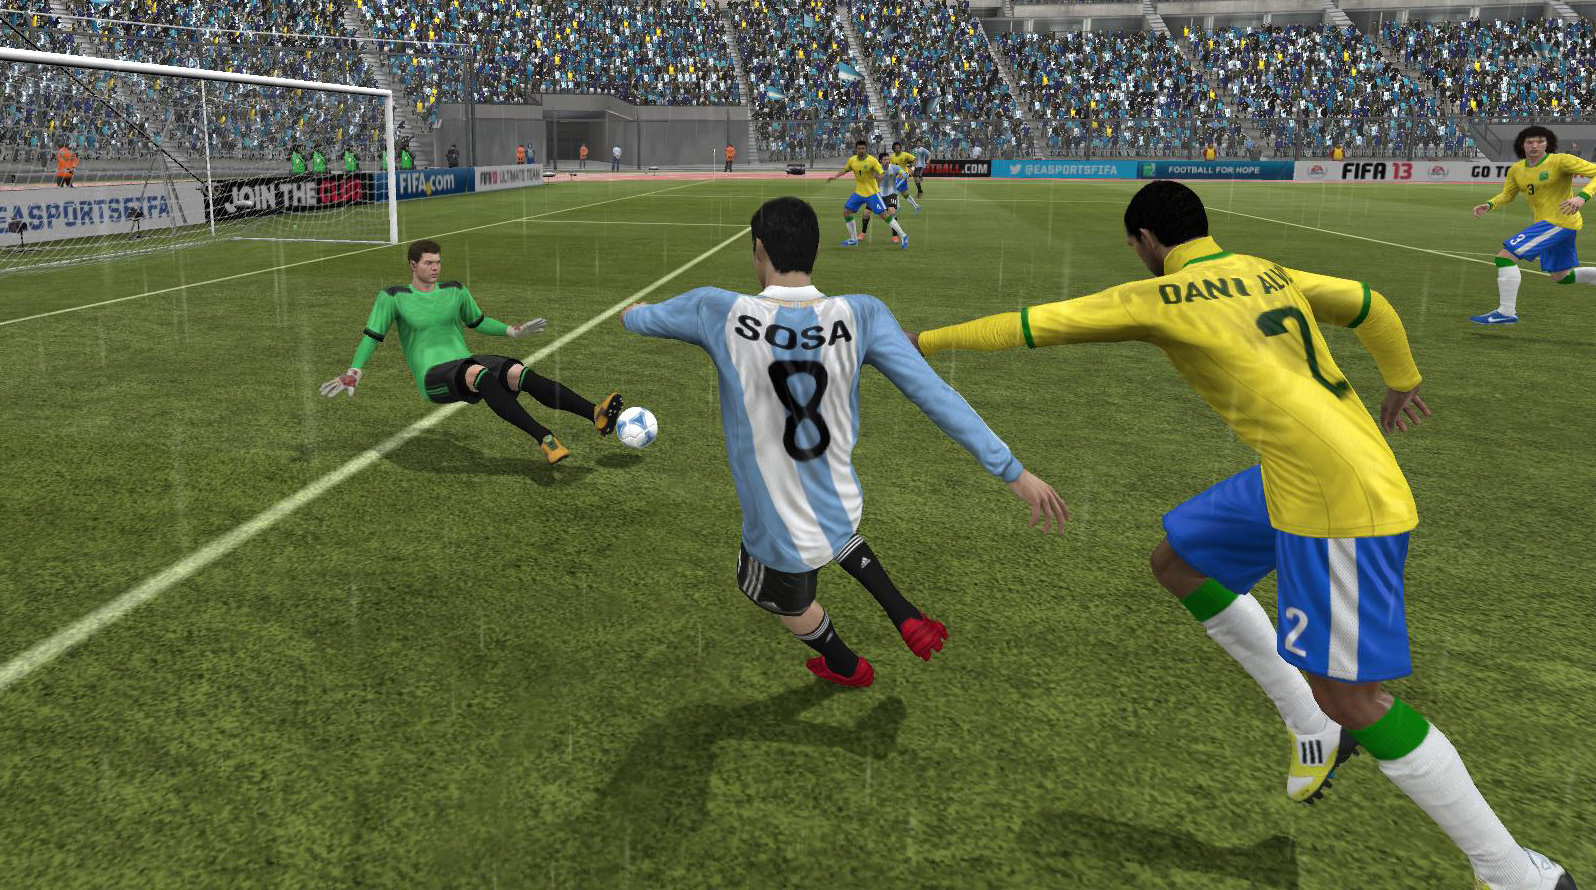 Download FIFA 2013 Full Version PC Game - Download Free Games